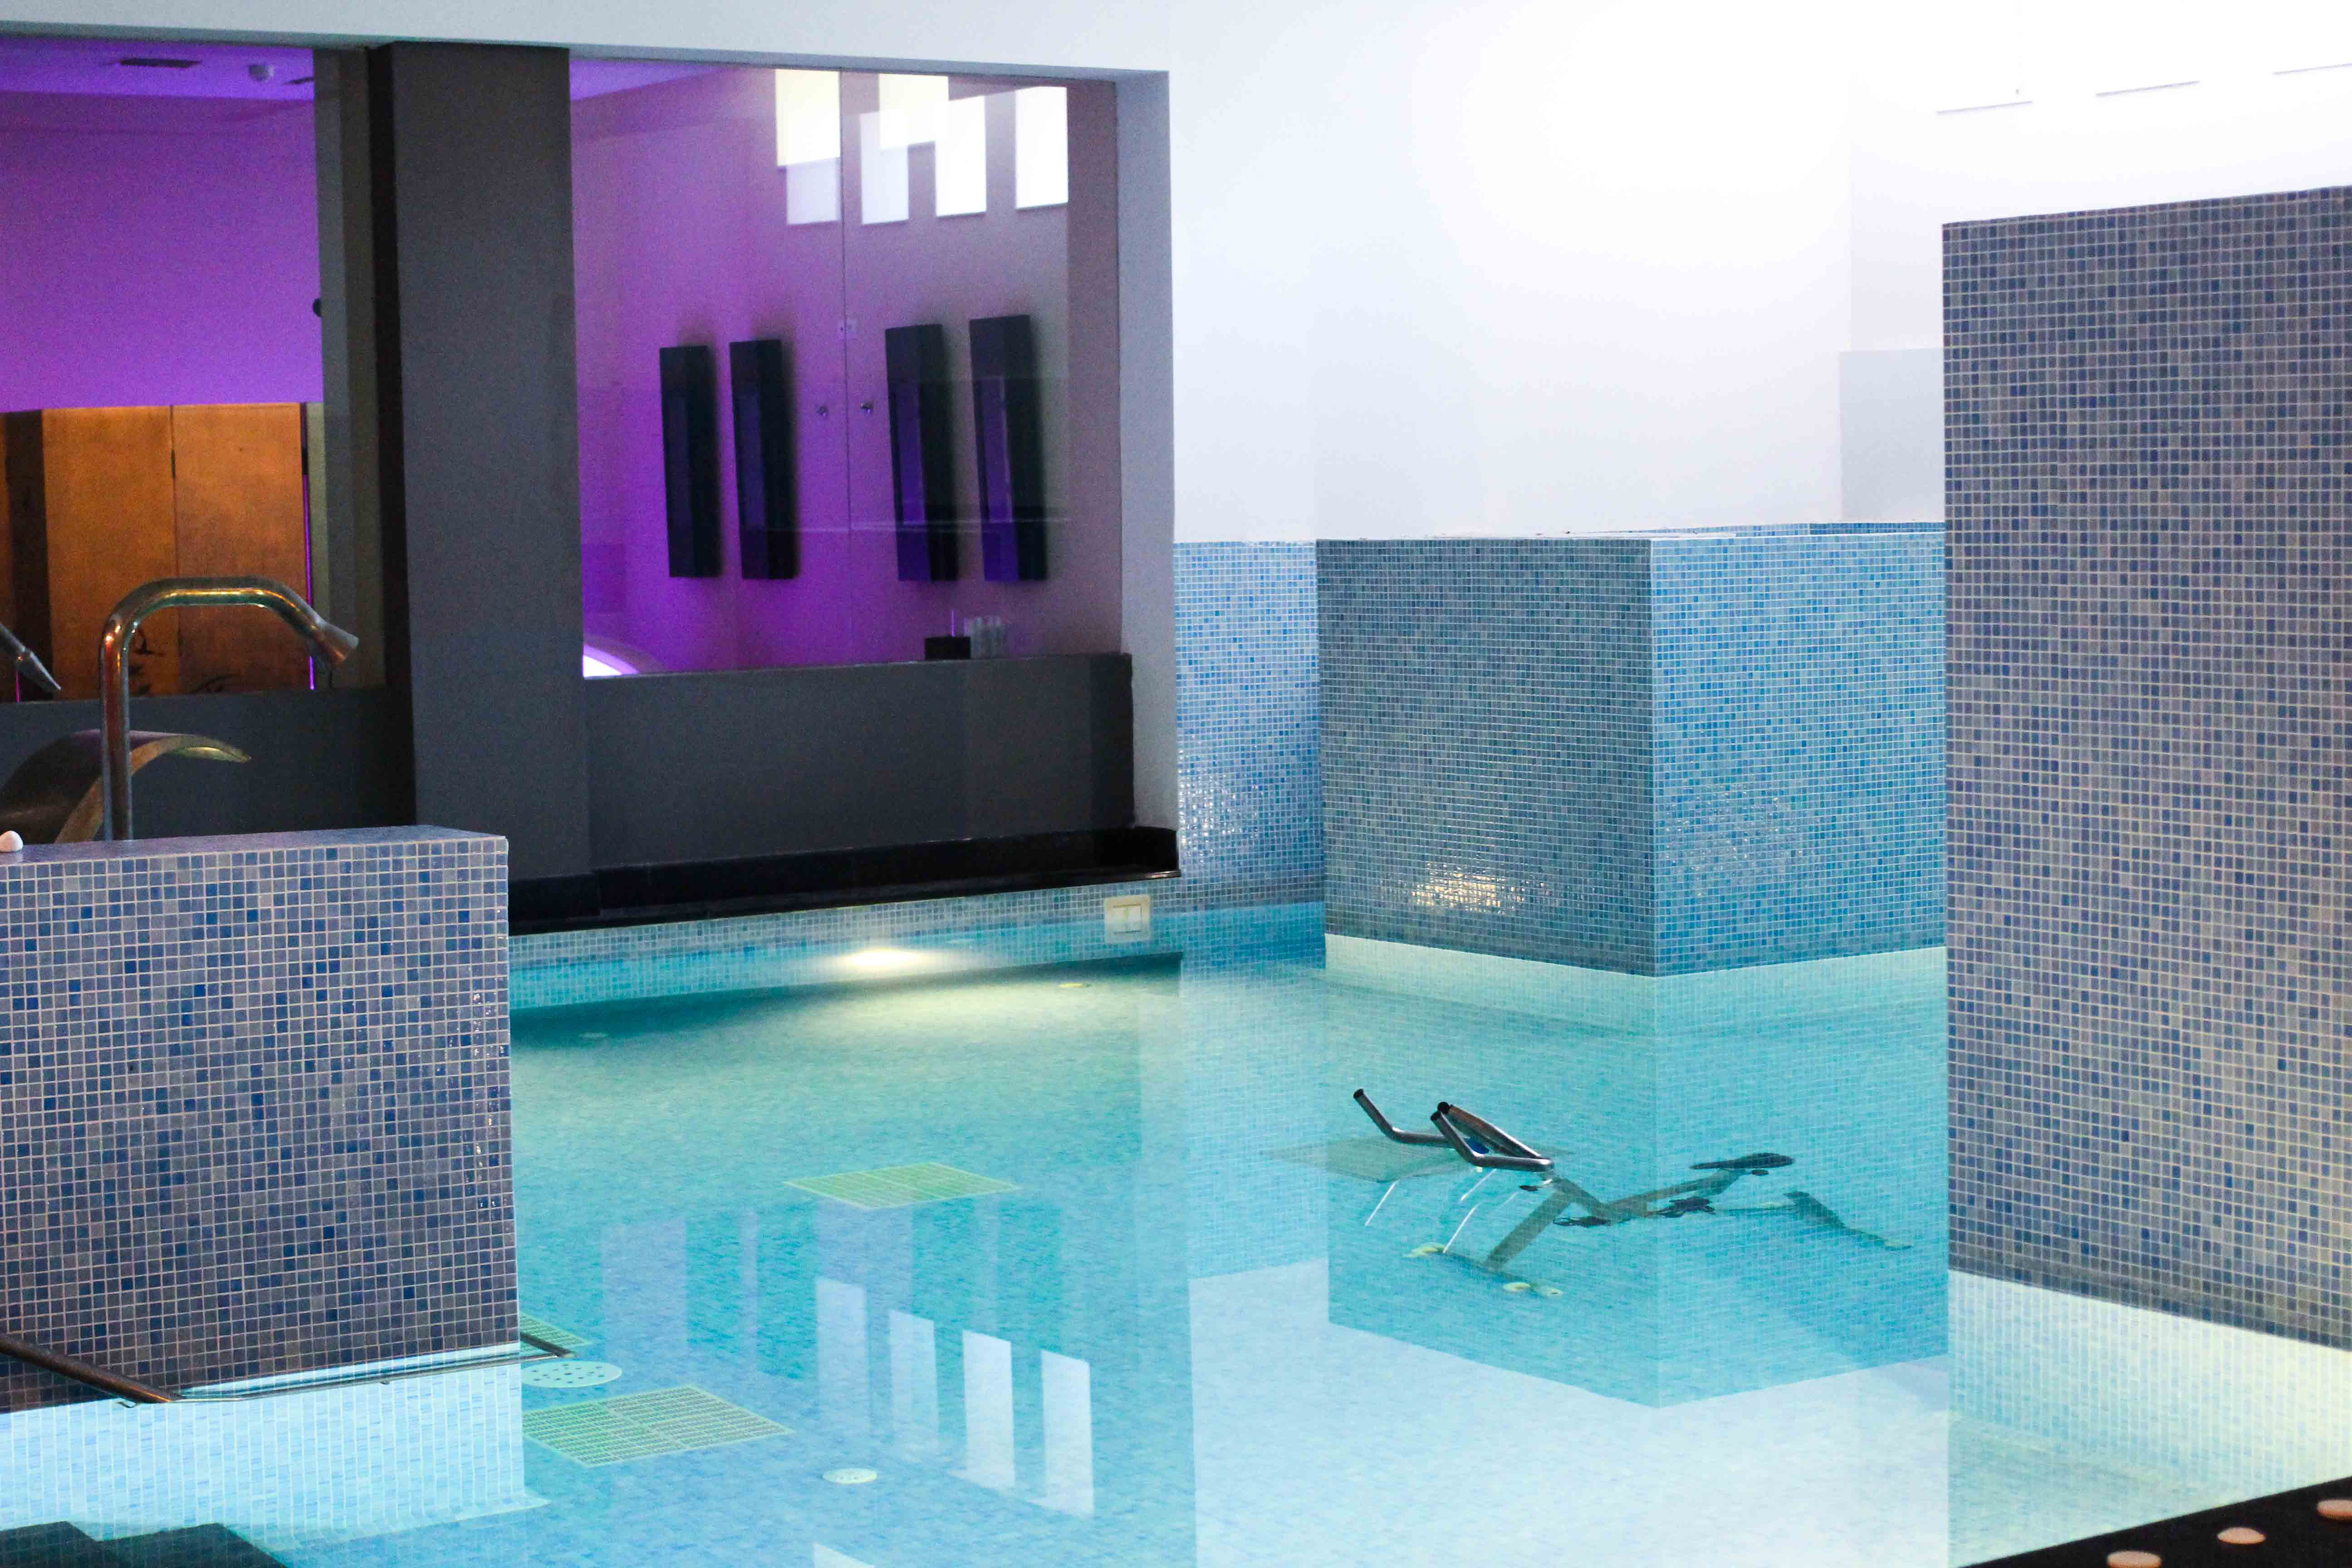 Spa Bereich Wellness Schwimmbad Out of the Blue Capsis Elite Resort Luxushotel Kreta Griechenland 1